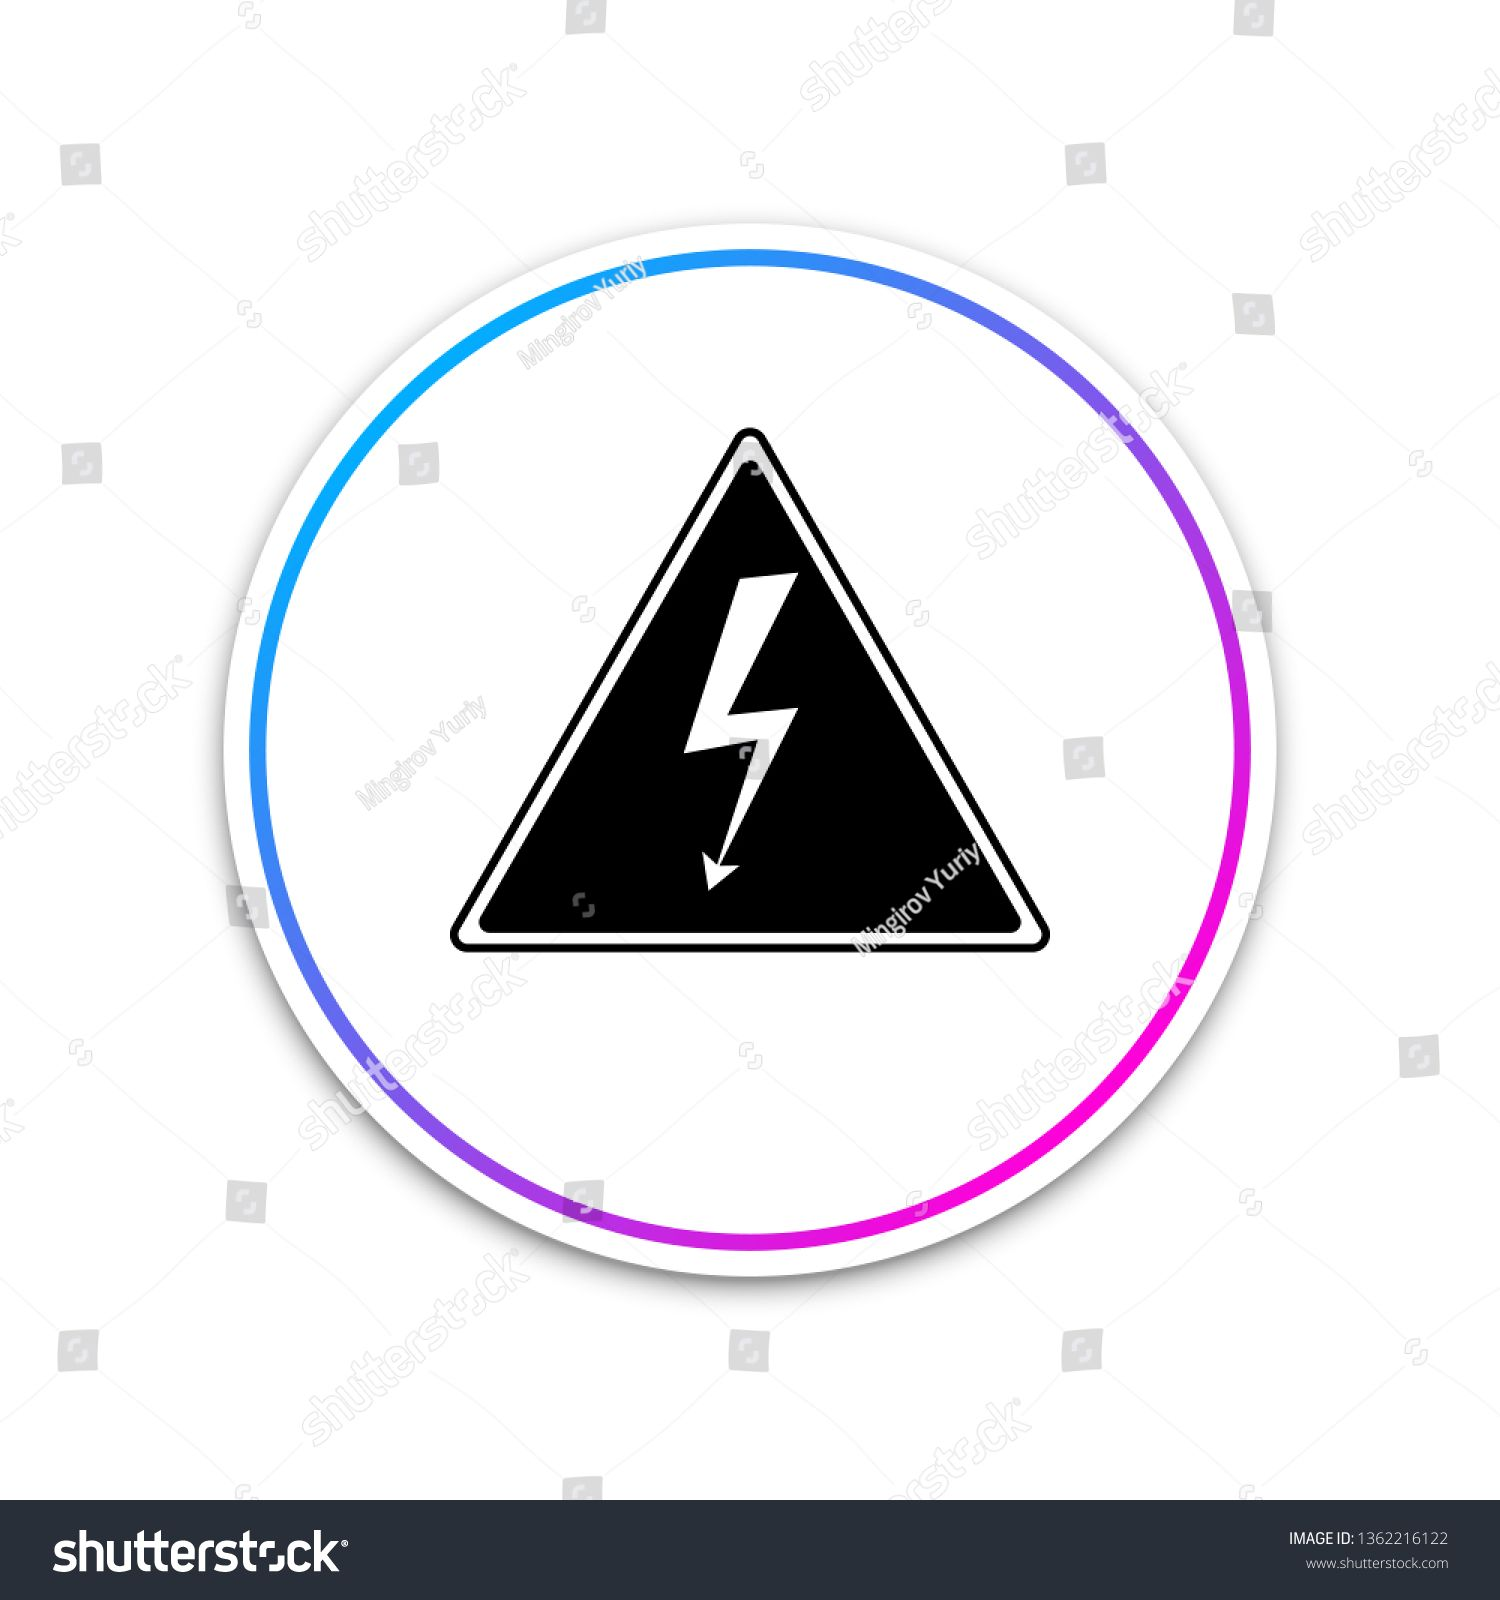 High voltage sign icon isolated on white background